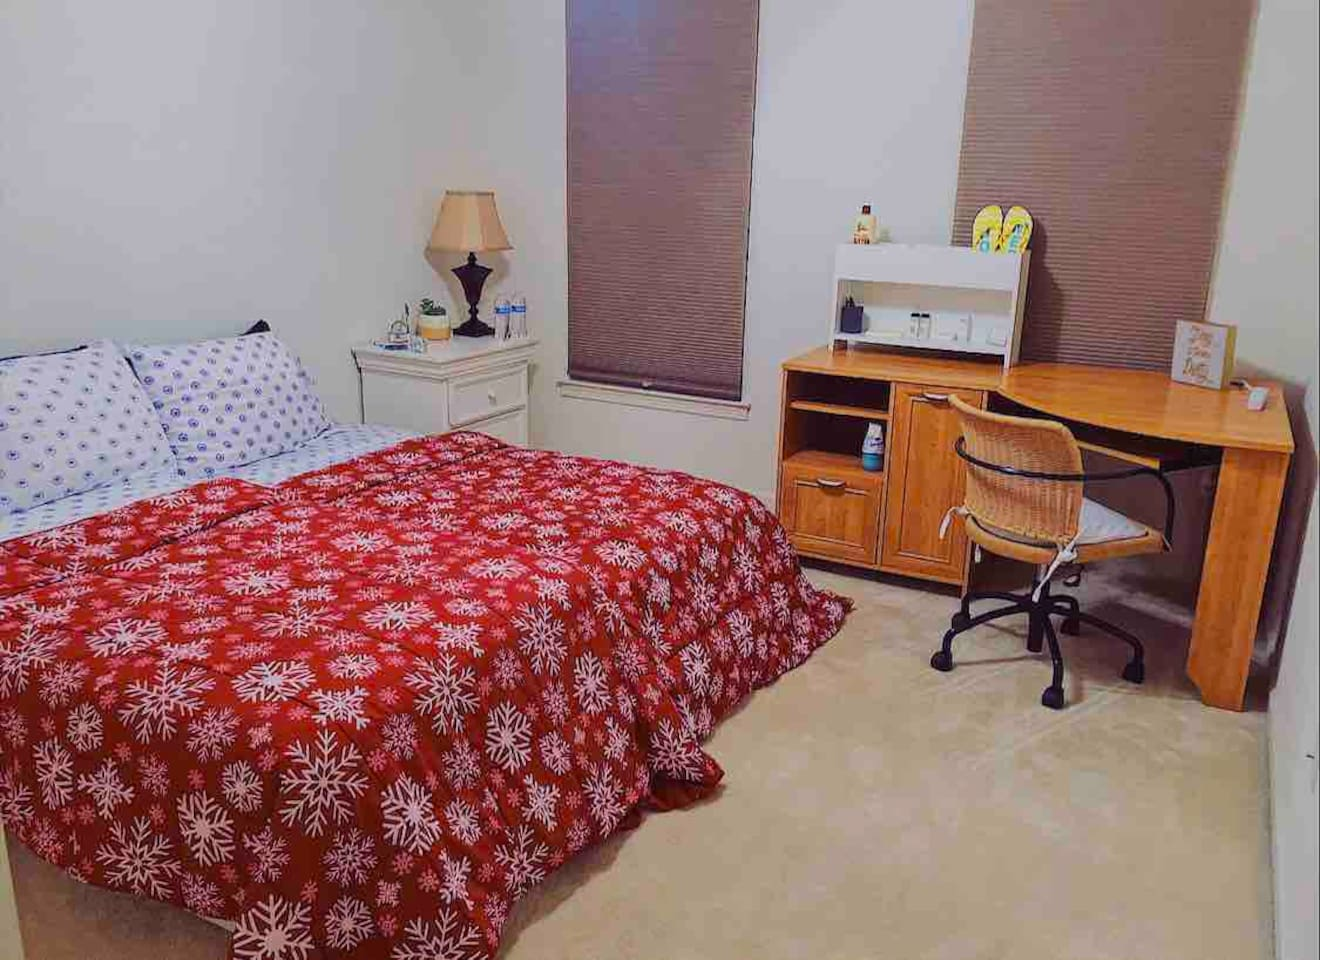 Cozy room with 2 twin beds, desk table, side table, lamp, organizer stand, and mini fridge